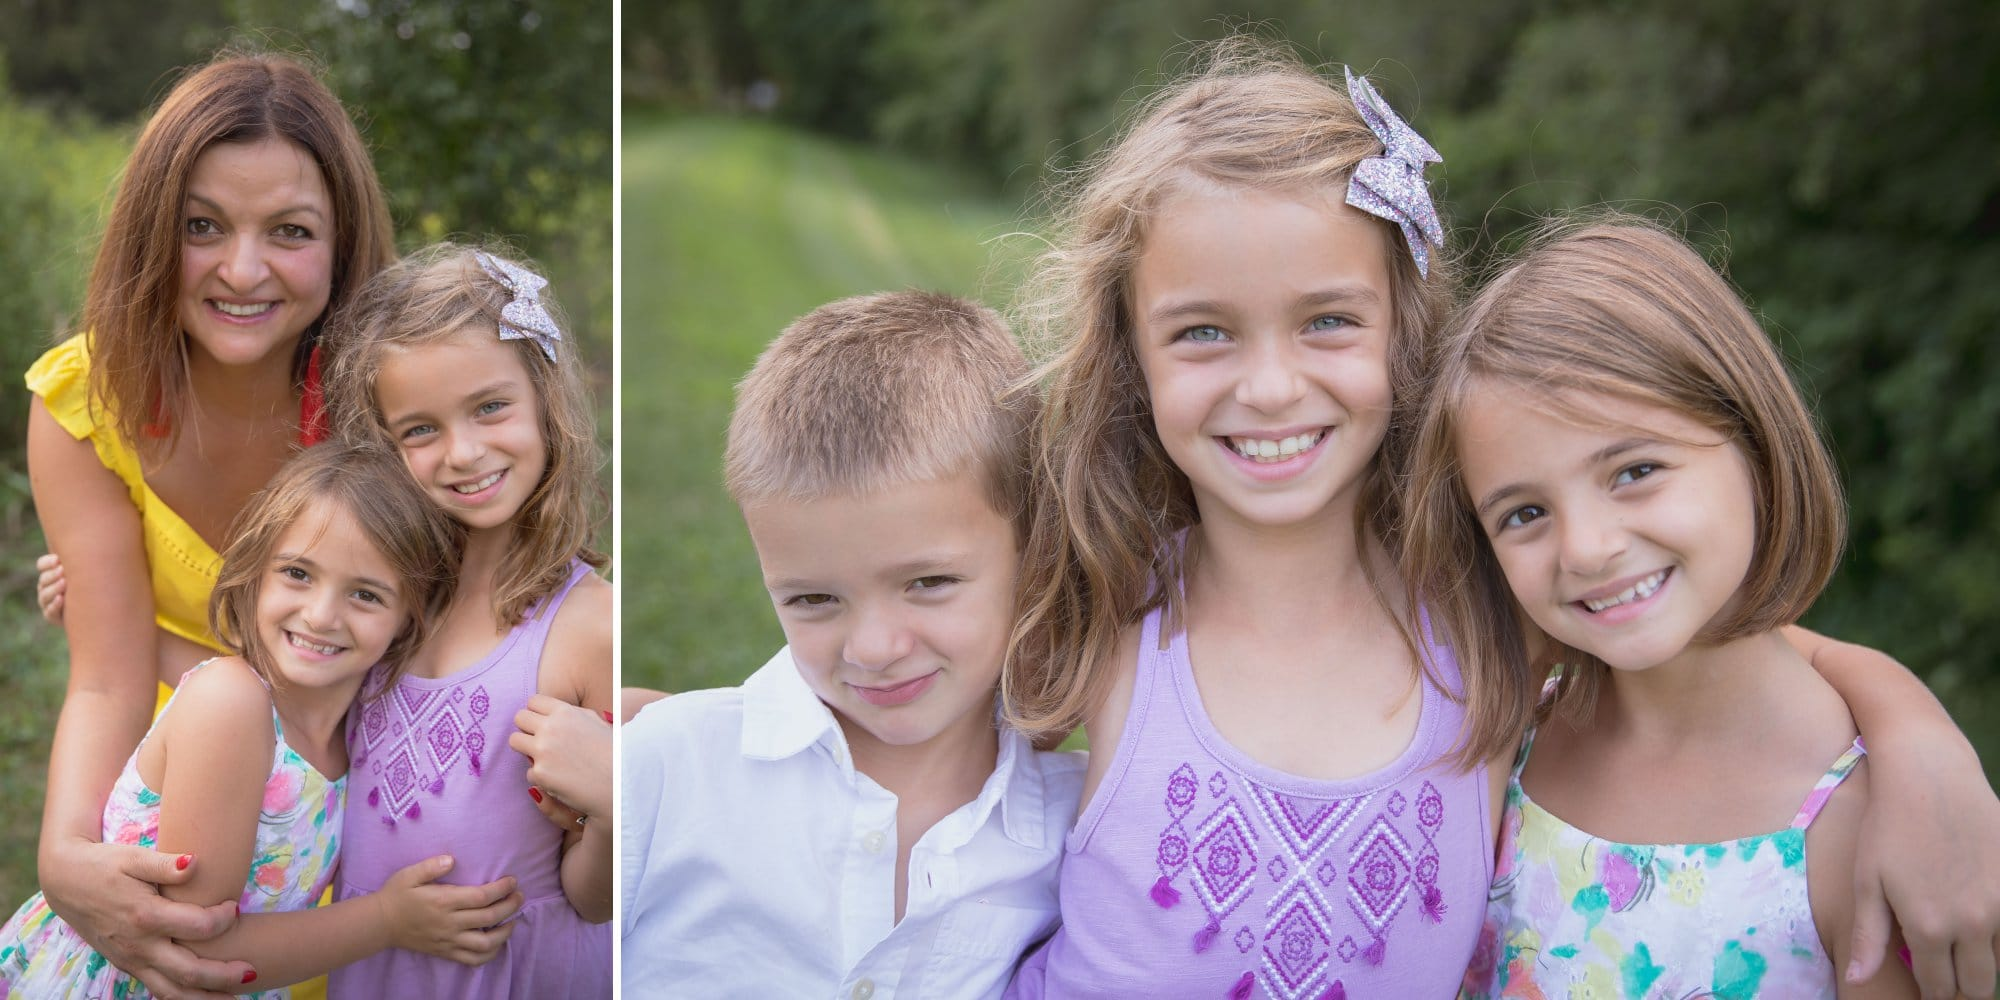 Casual family pictures of kiddos laughing together